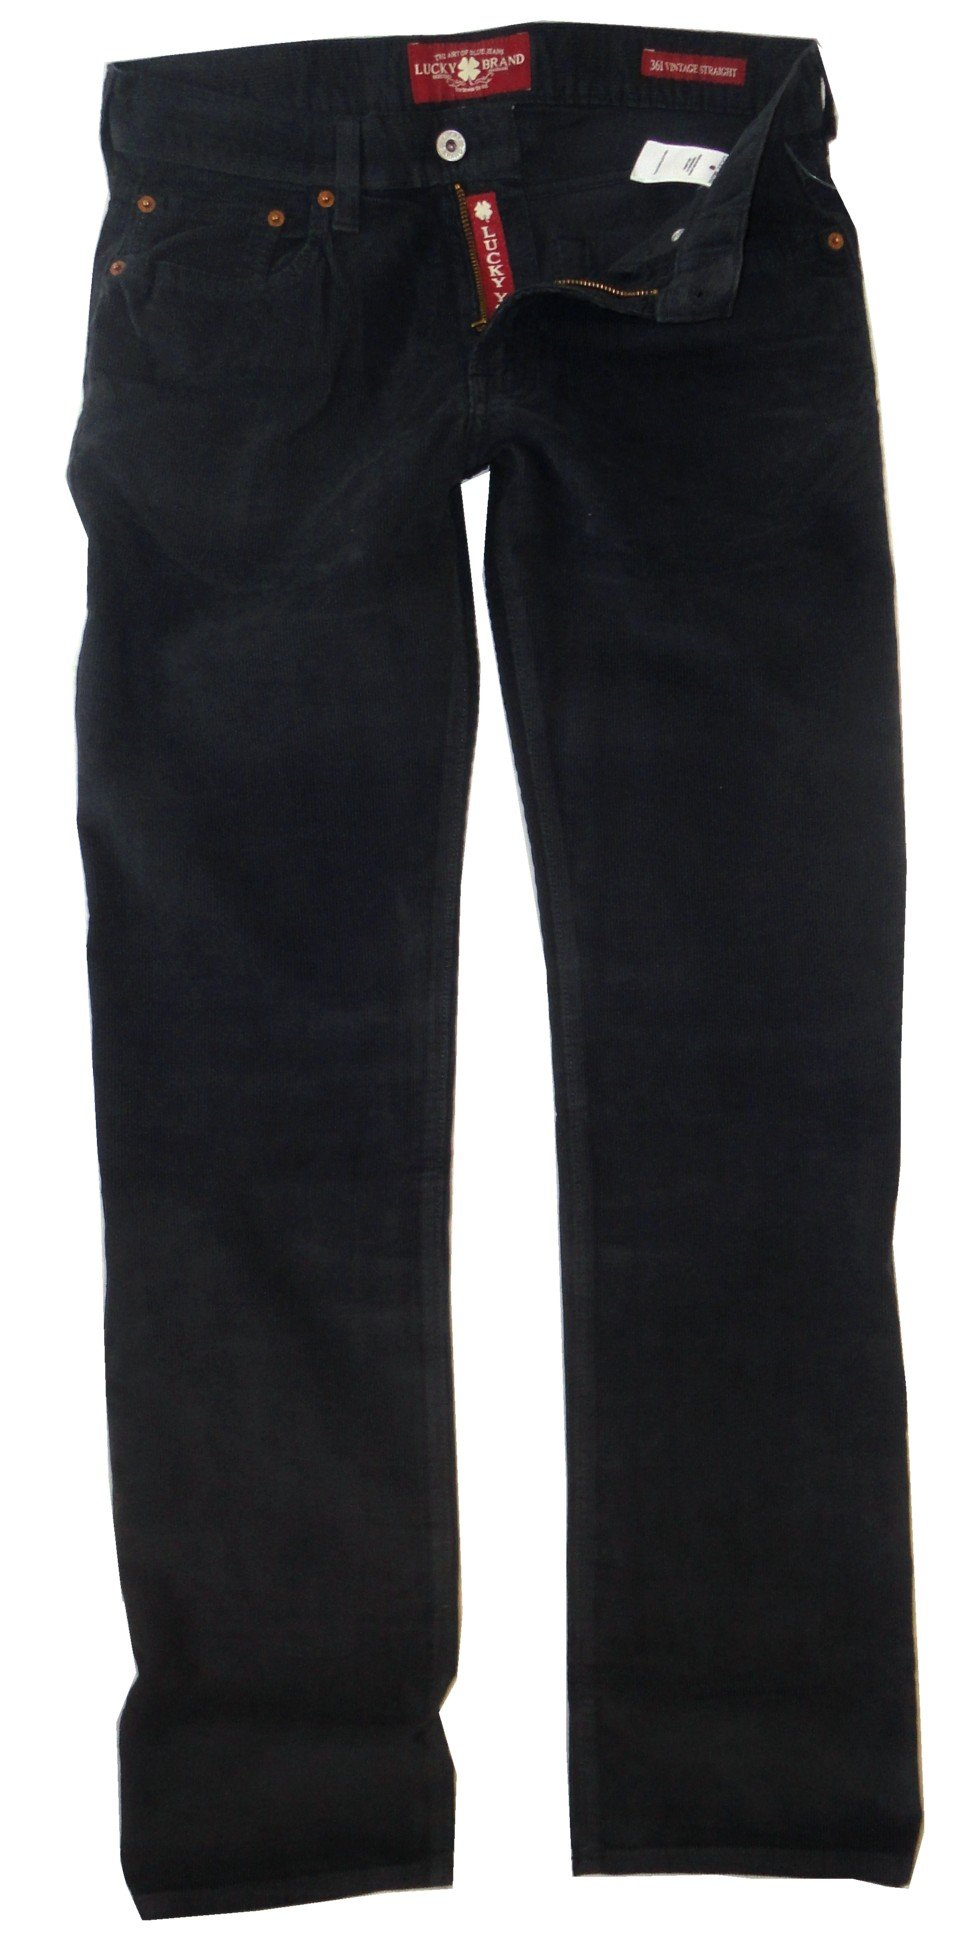 LUCKY BRAND BLUE 361 VINTAGE STRAIGHT FIT CORDUROY FLAT FRONT 5 PKT PANTS MEN (34x34) by Lucky Brand (Image #1)